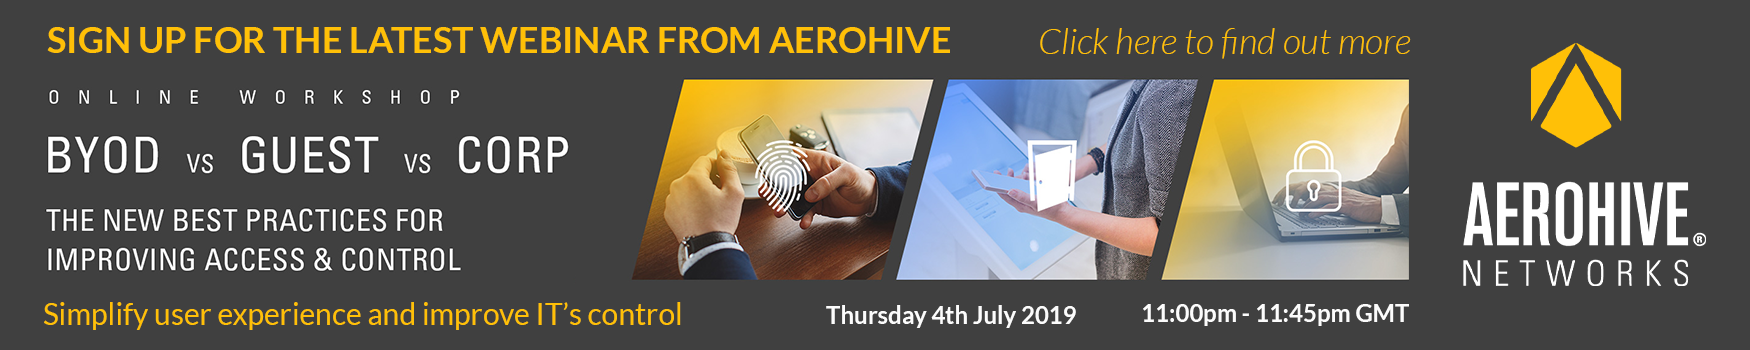 Aerohive Networks Products & Solutions from Idency